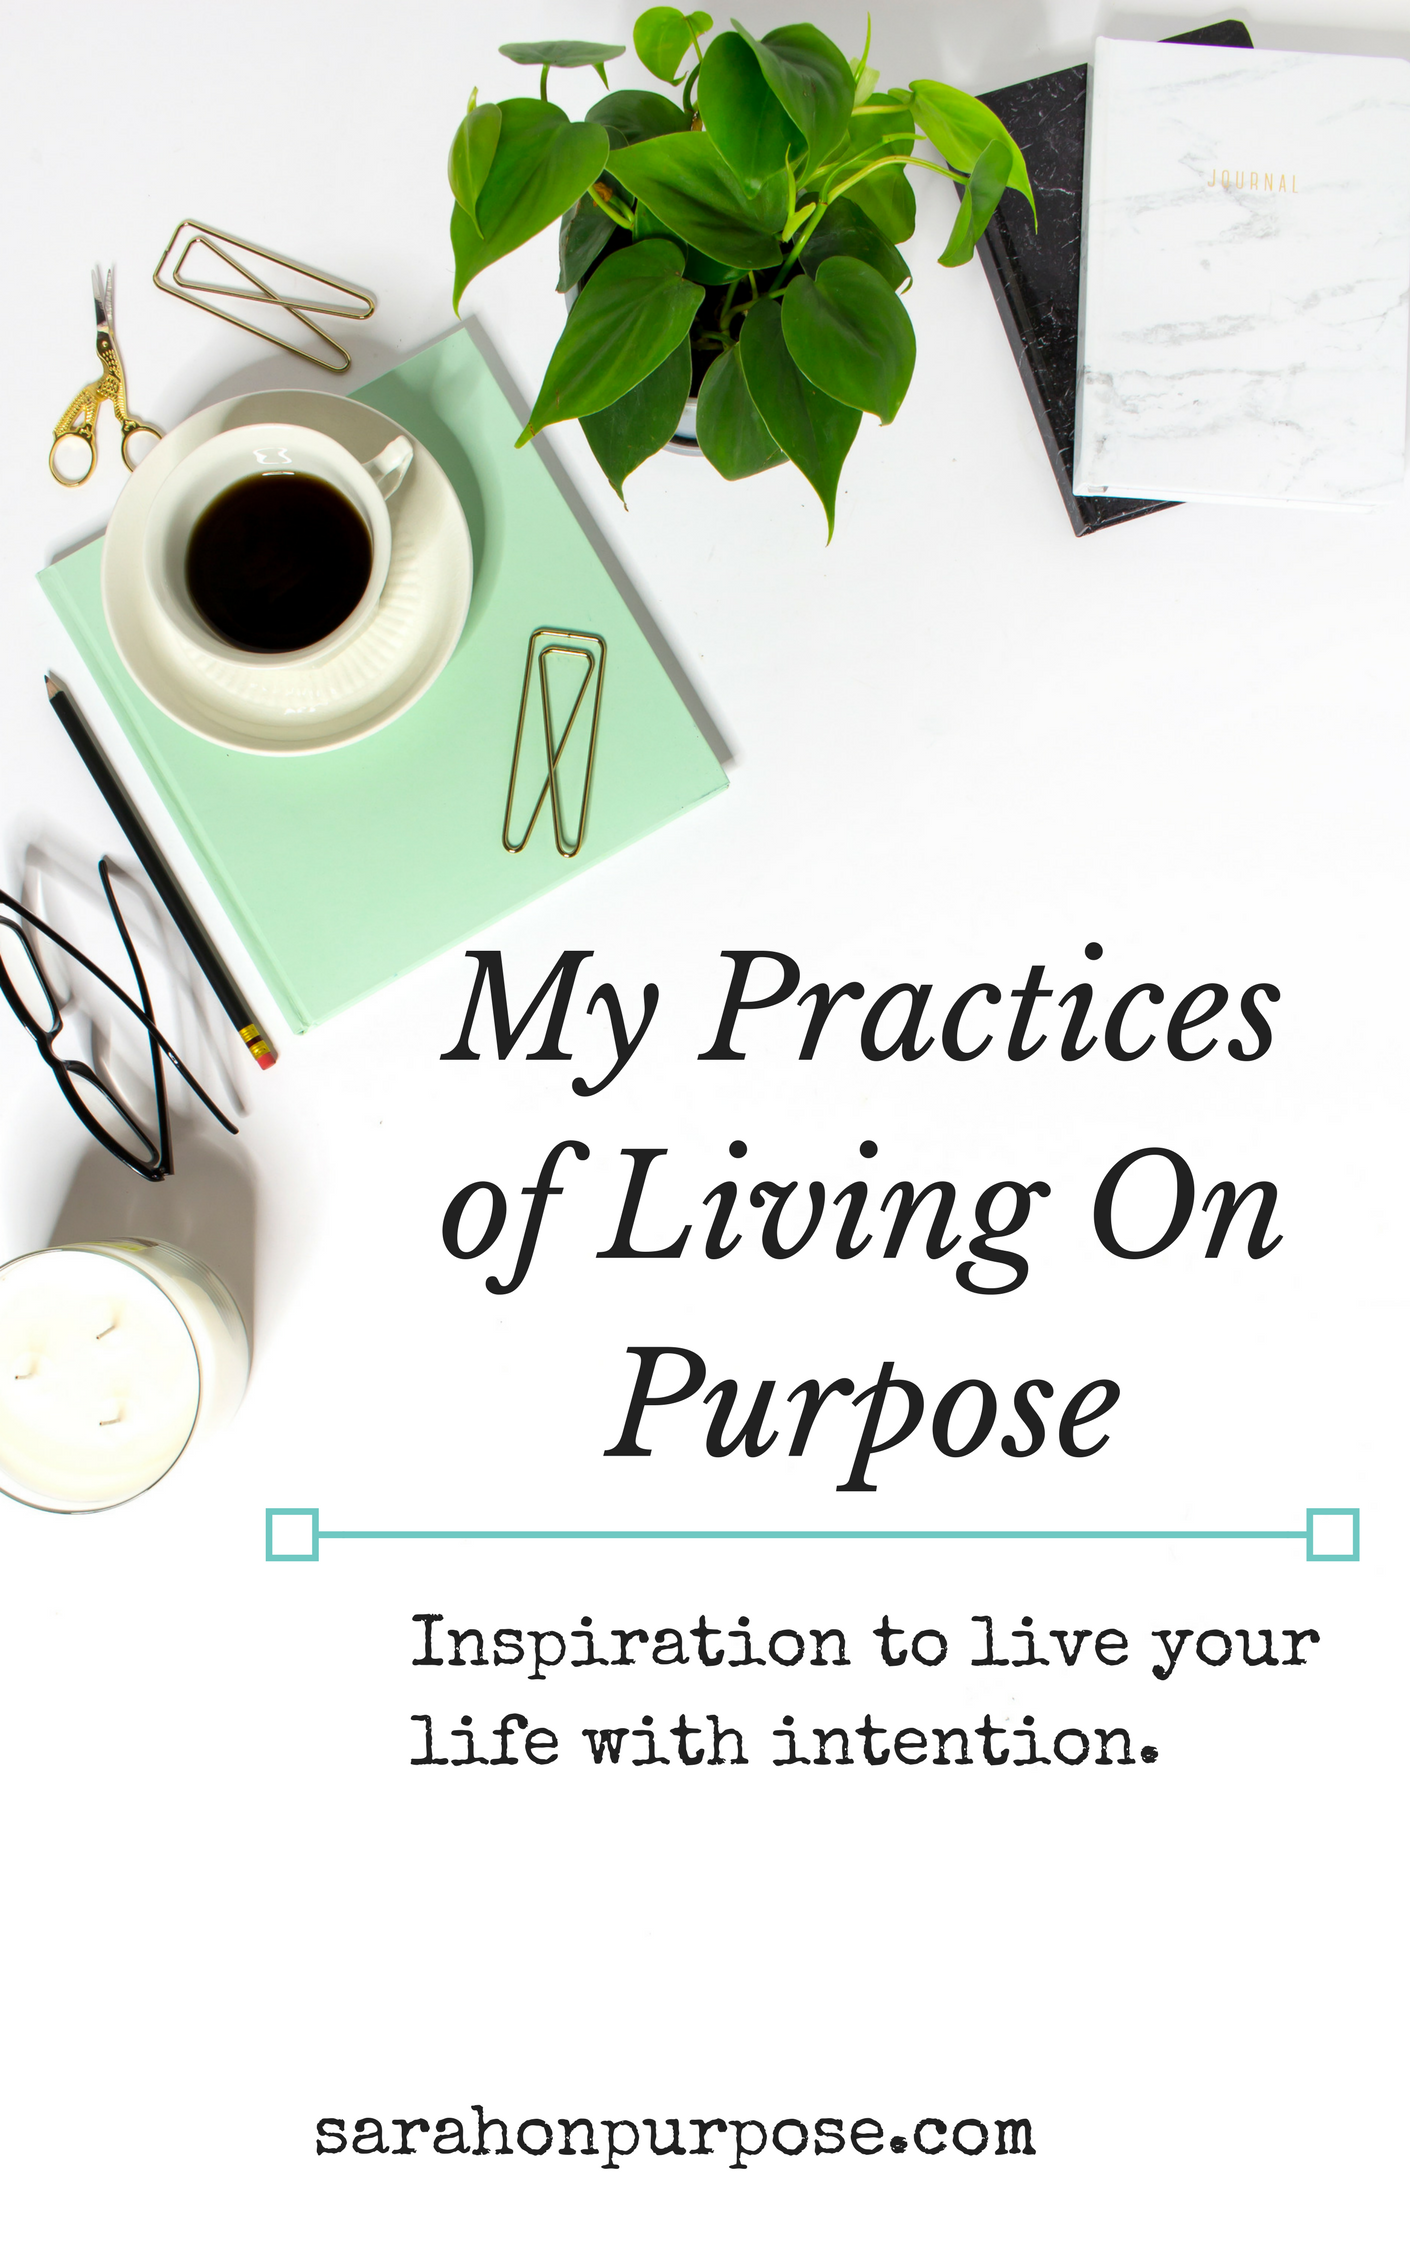 Free Copy Of My Practices Of Living On Purpose